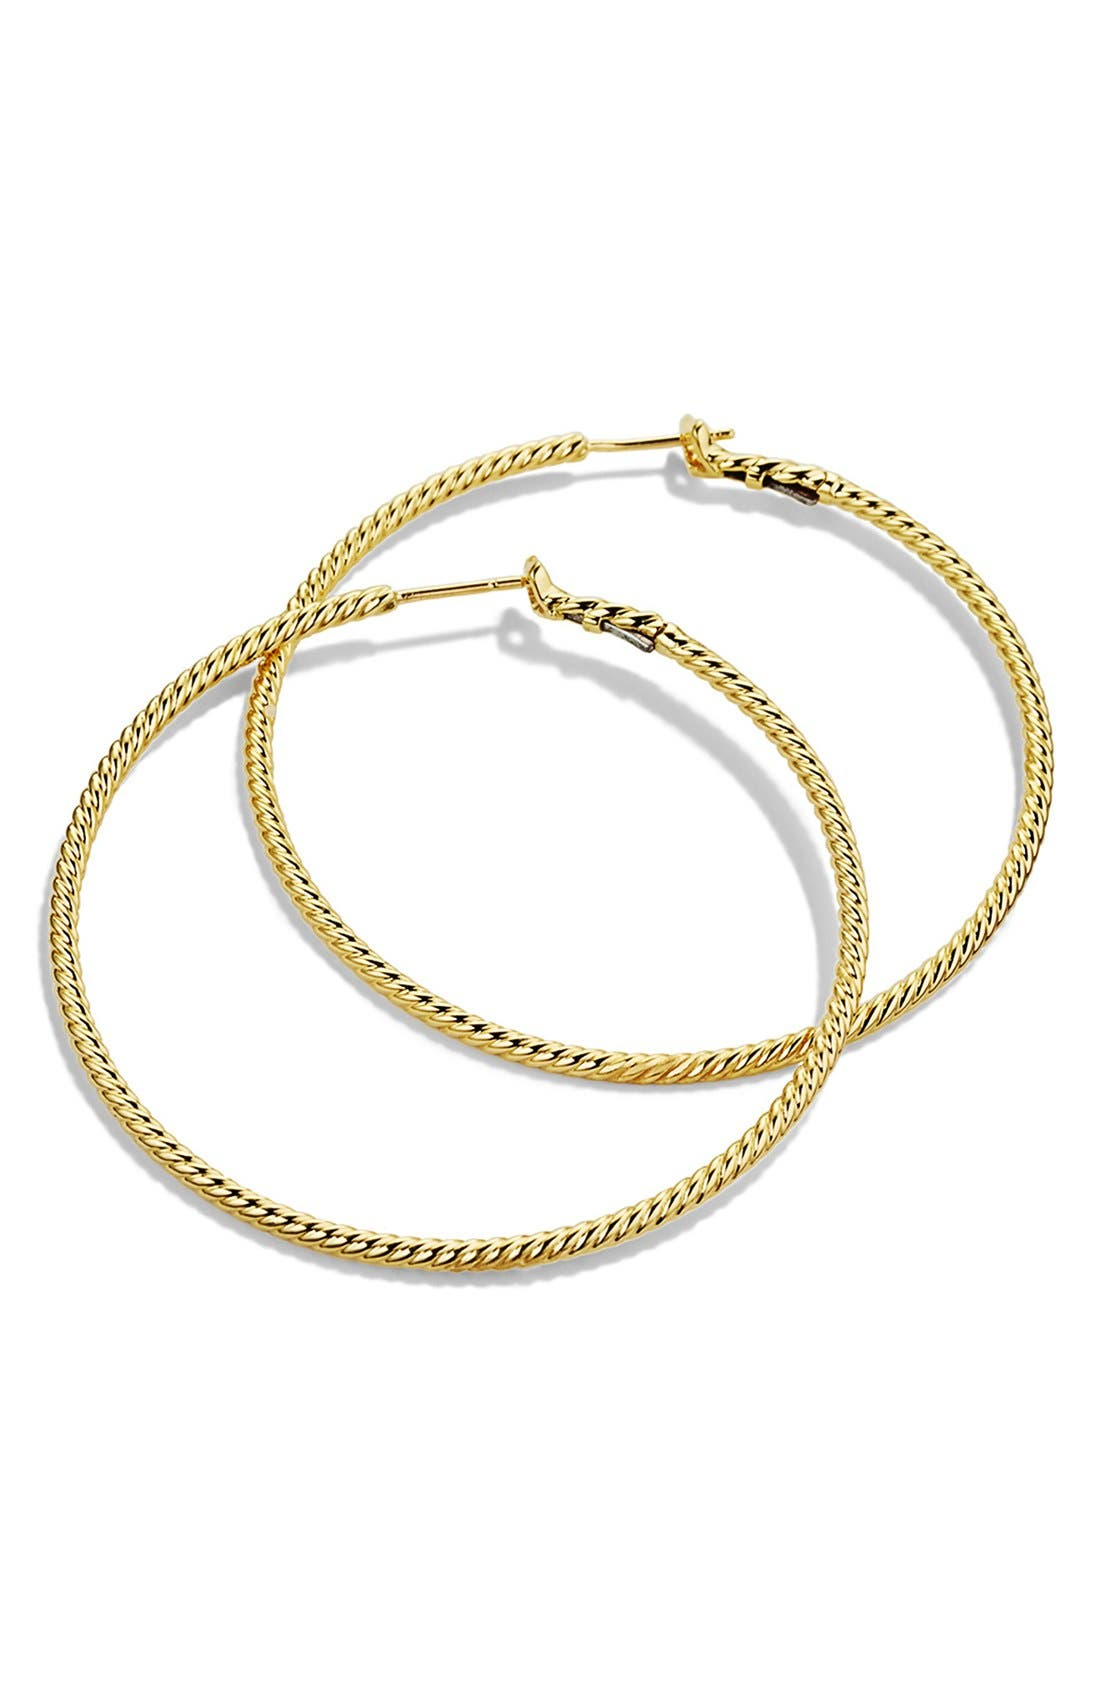 'Cable Classics' Hoop Earrings in Gold,                             Alternate thumbnail 2, color,                             Gold